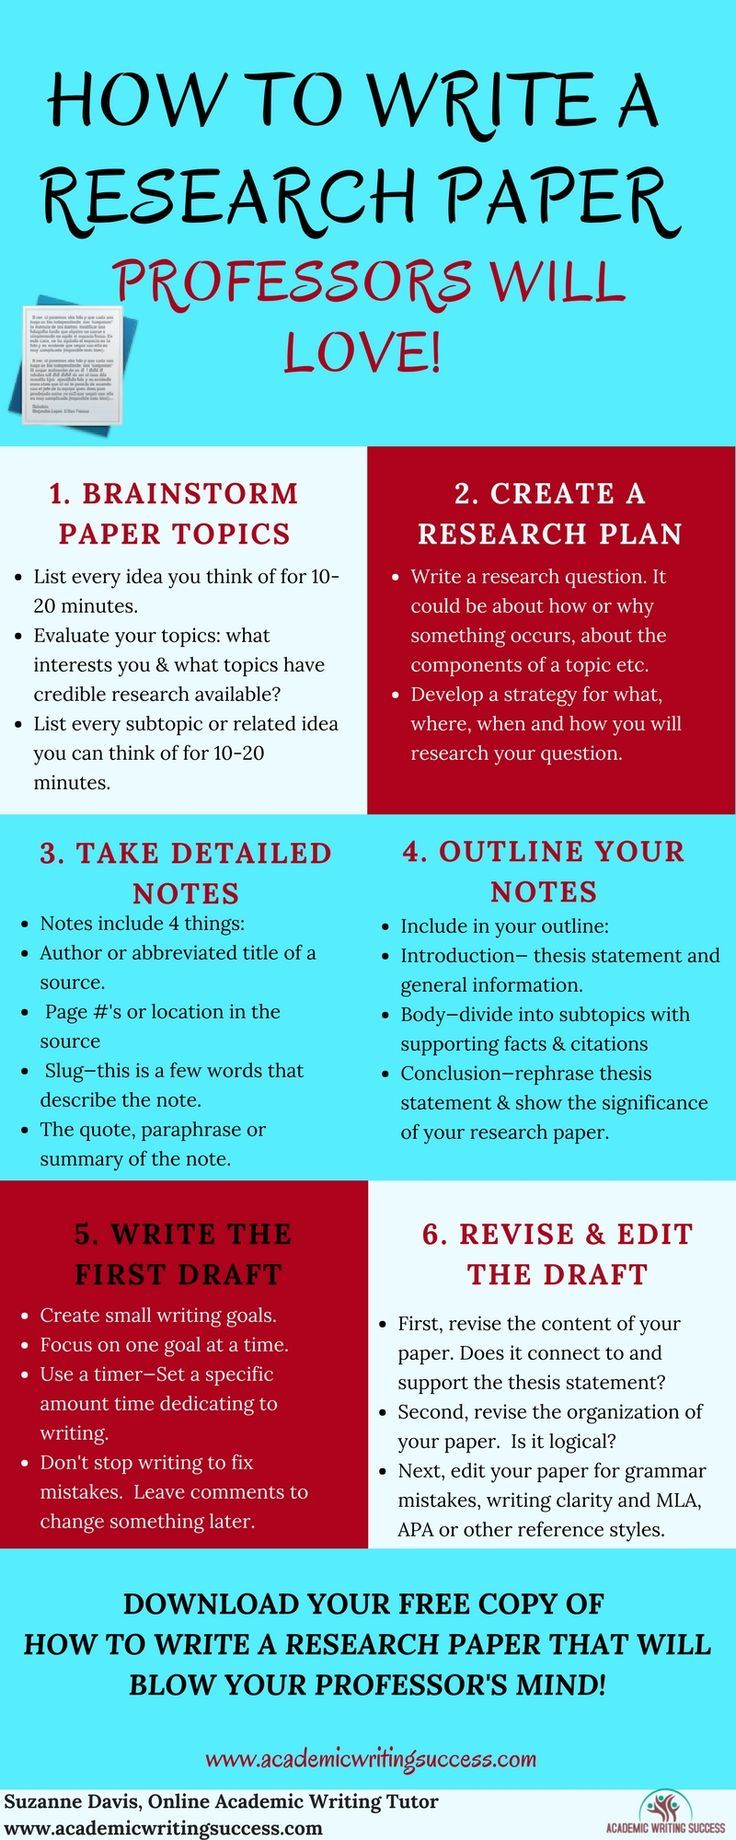 006 Research Paper Tips For Papers Wondrous Good Effective Writing Full